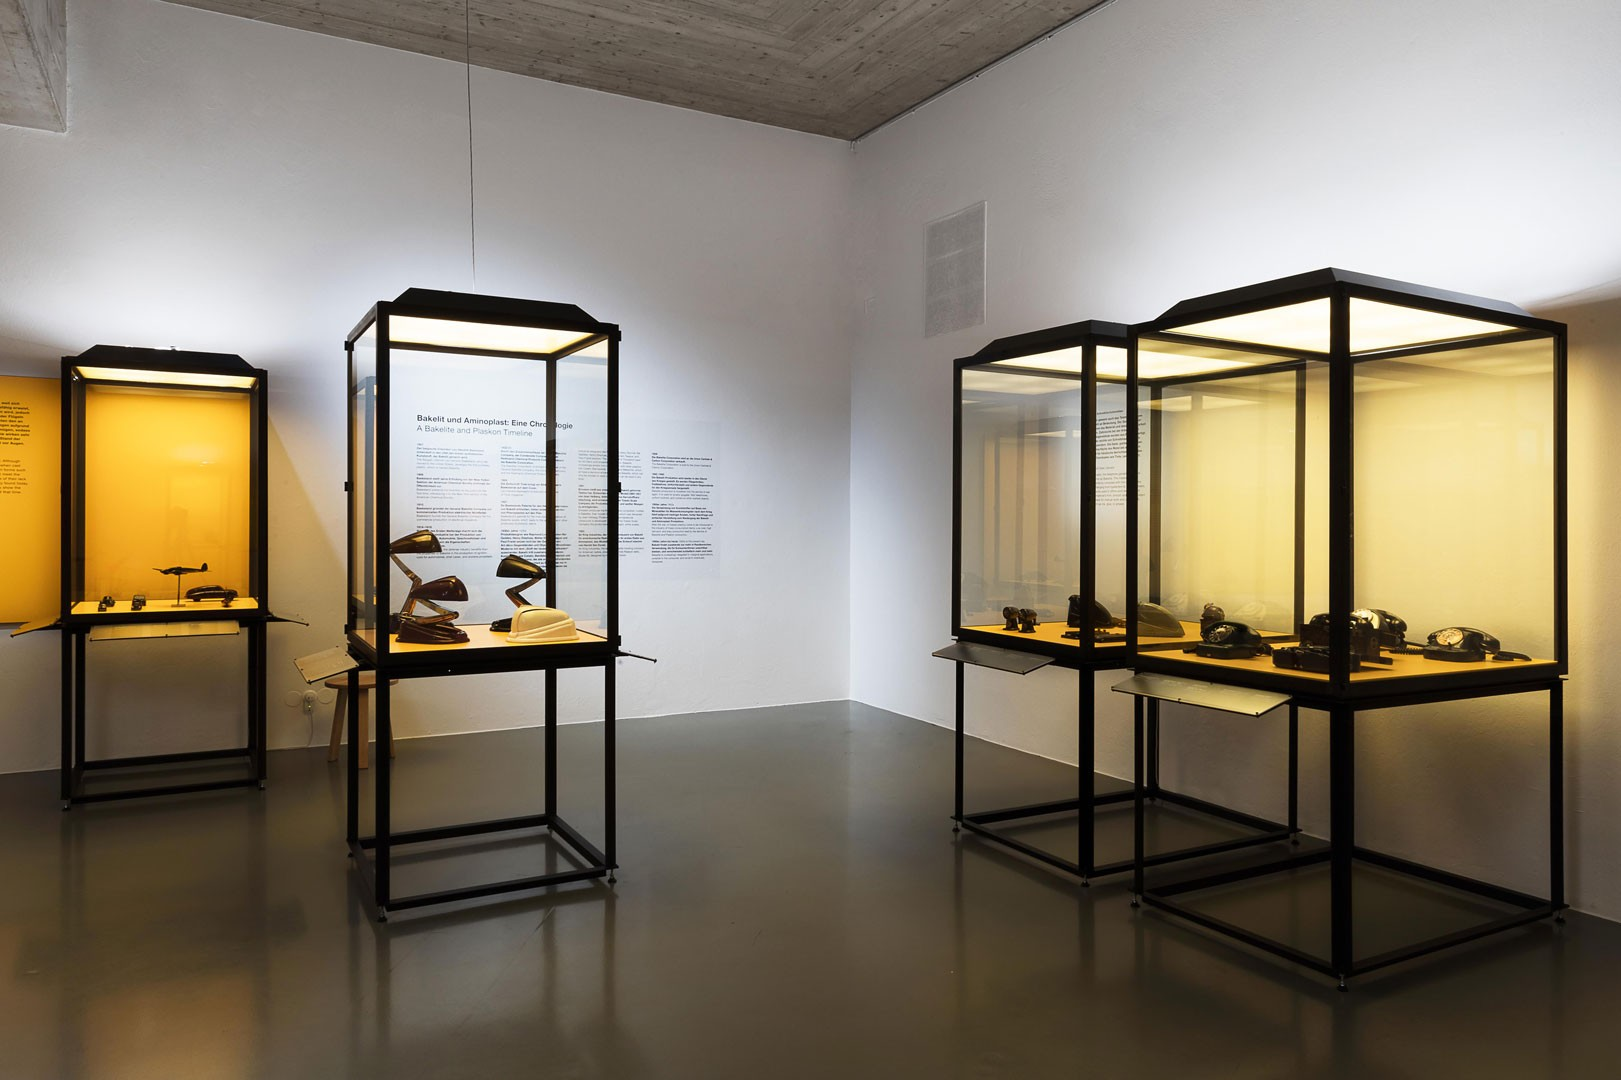 <BODY><div>MAK Exhibition View, 2020</div><div>BAKELITE: The Georg Kargl Collection </div><div>MAK DESIGN LAB</div><div>© Aslan Kudrnofsky/MAK </div></BODY>